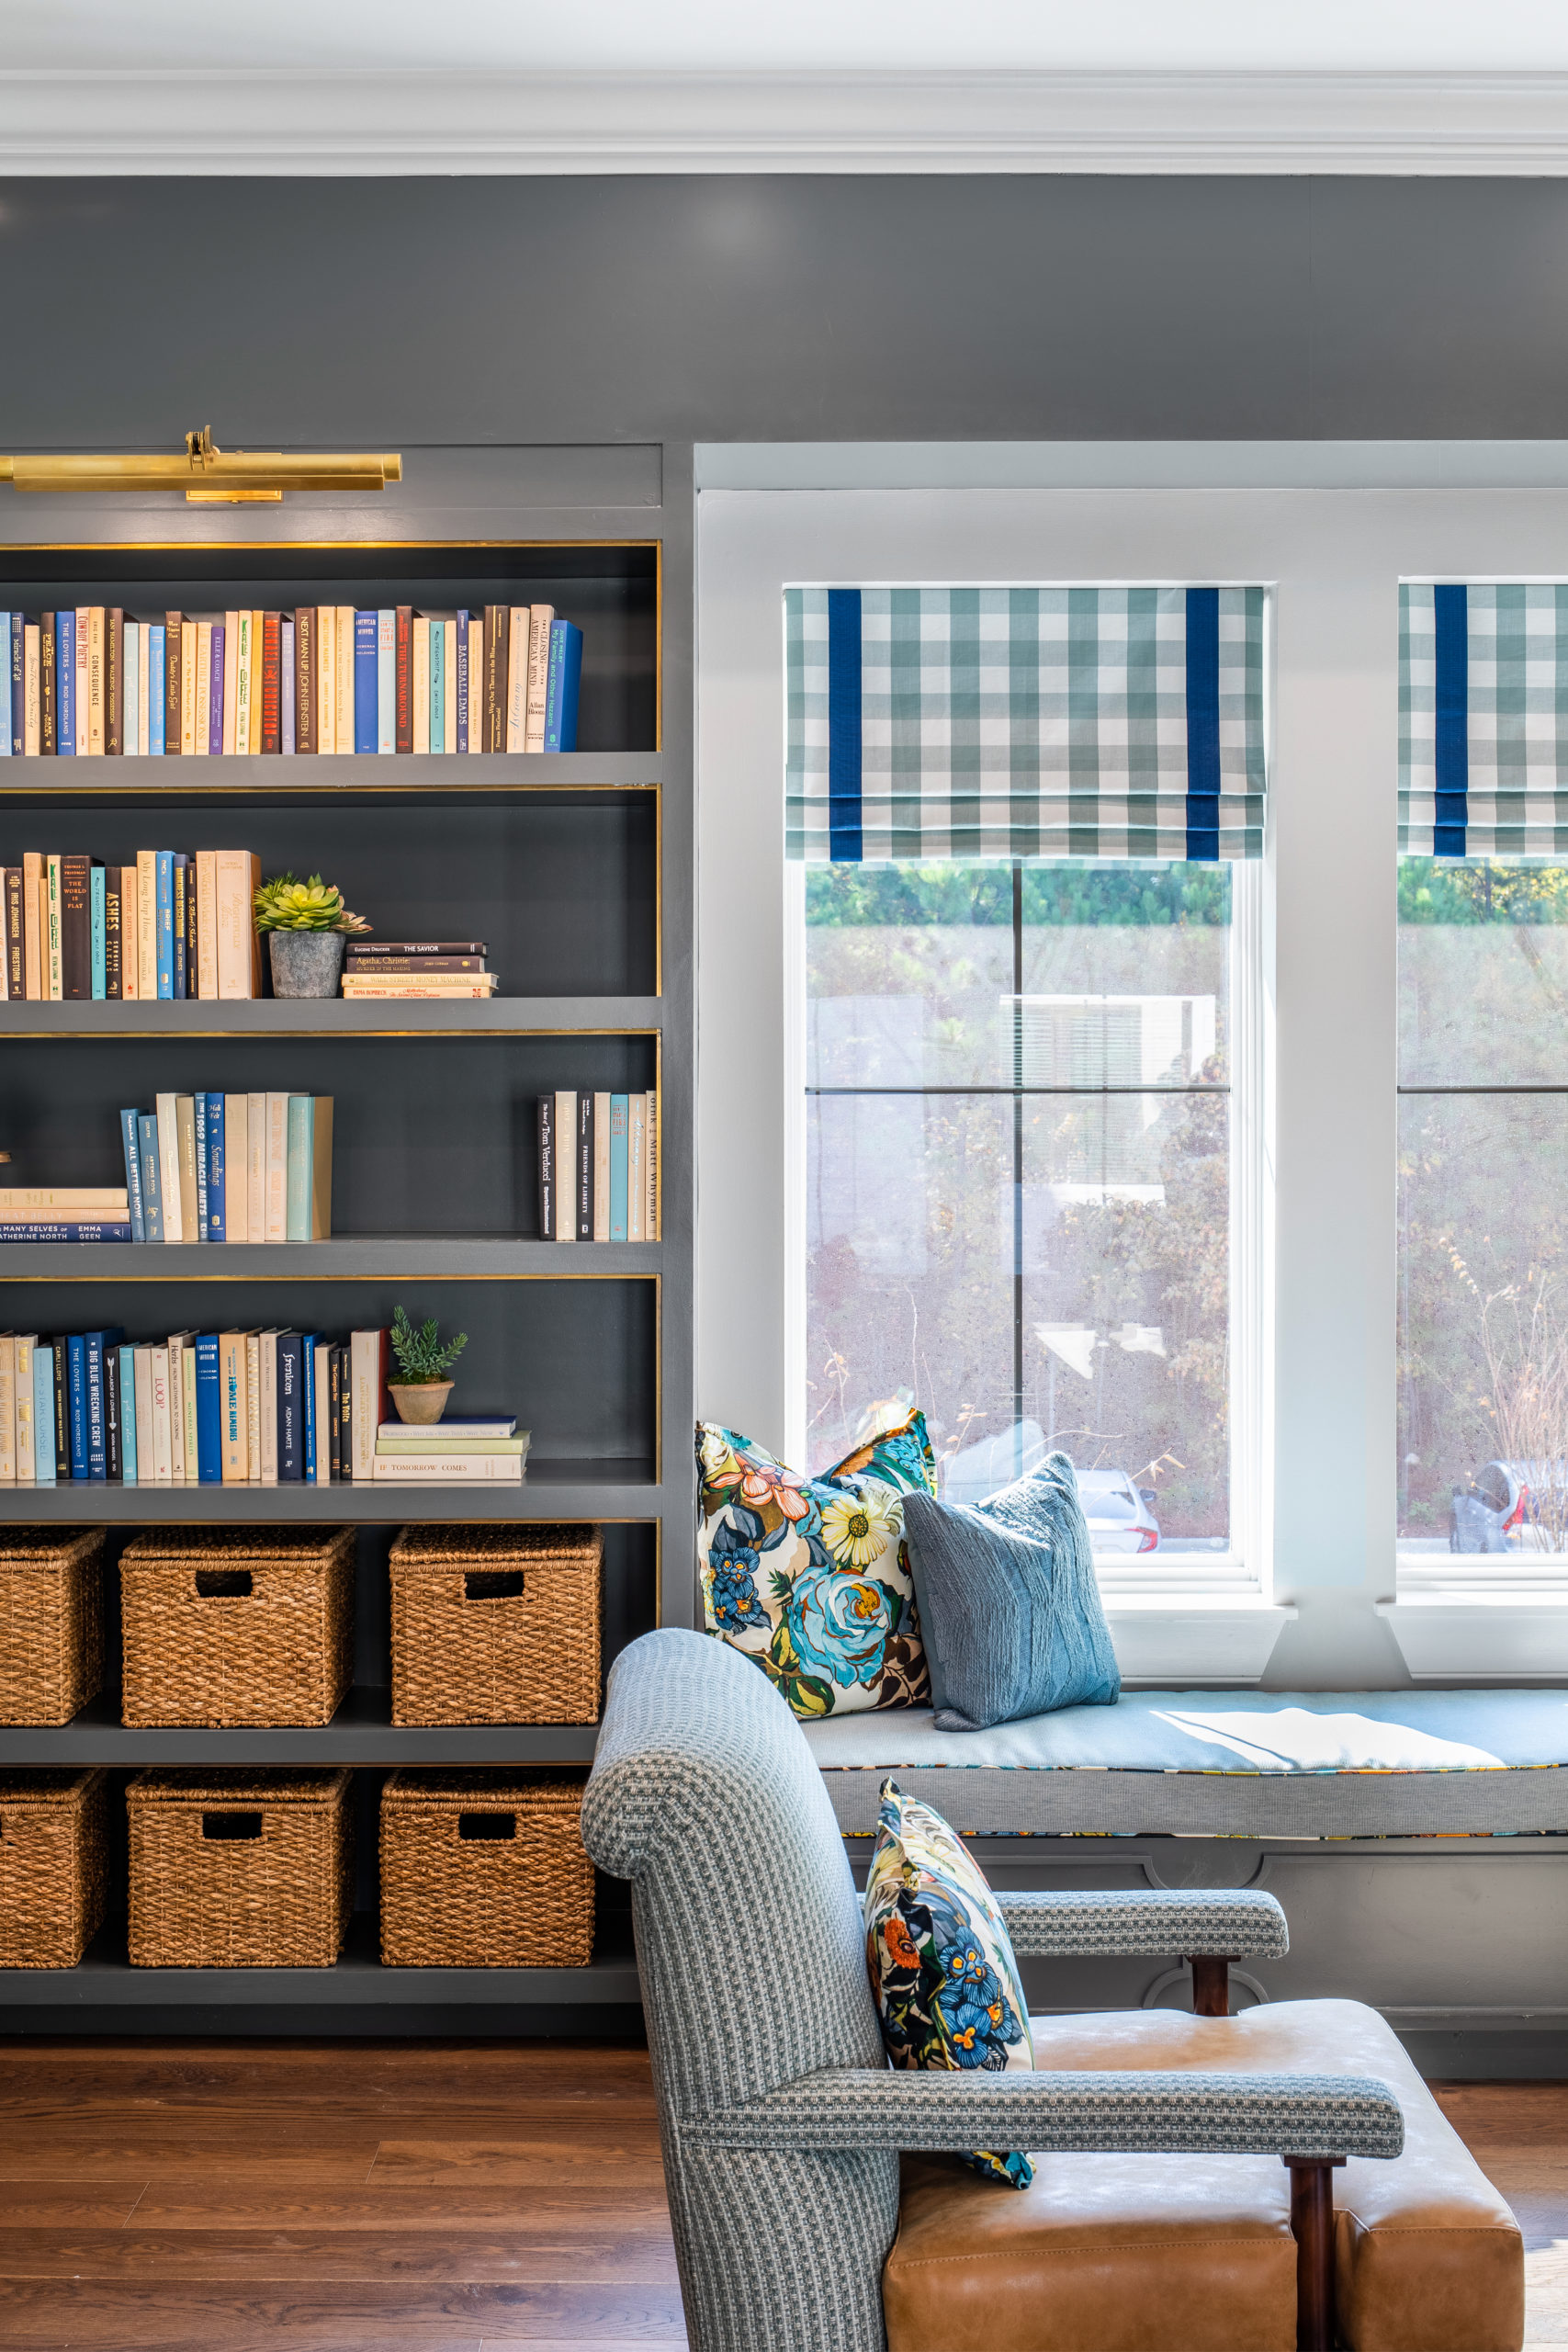 Longleaf library with window above bench seating, blue pattern and brown leather chair, gray wood bookcases with books and baskets on shelves